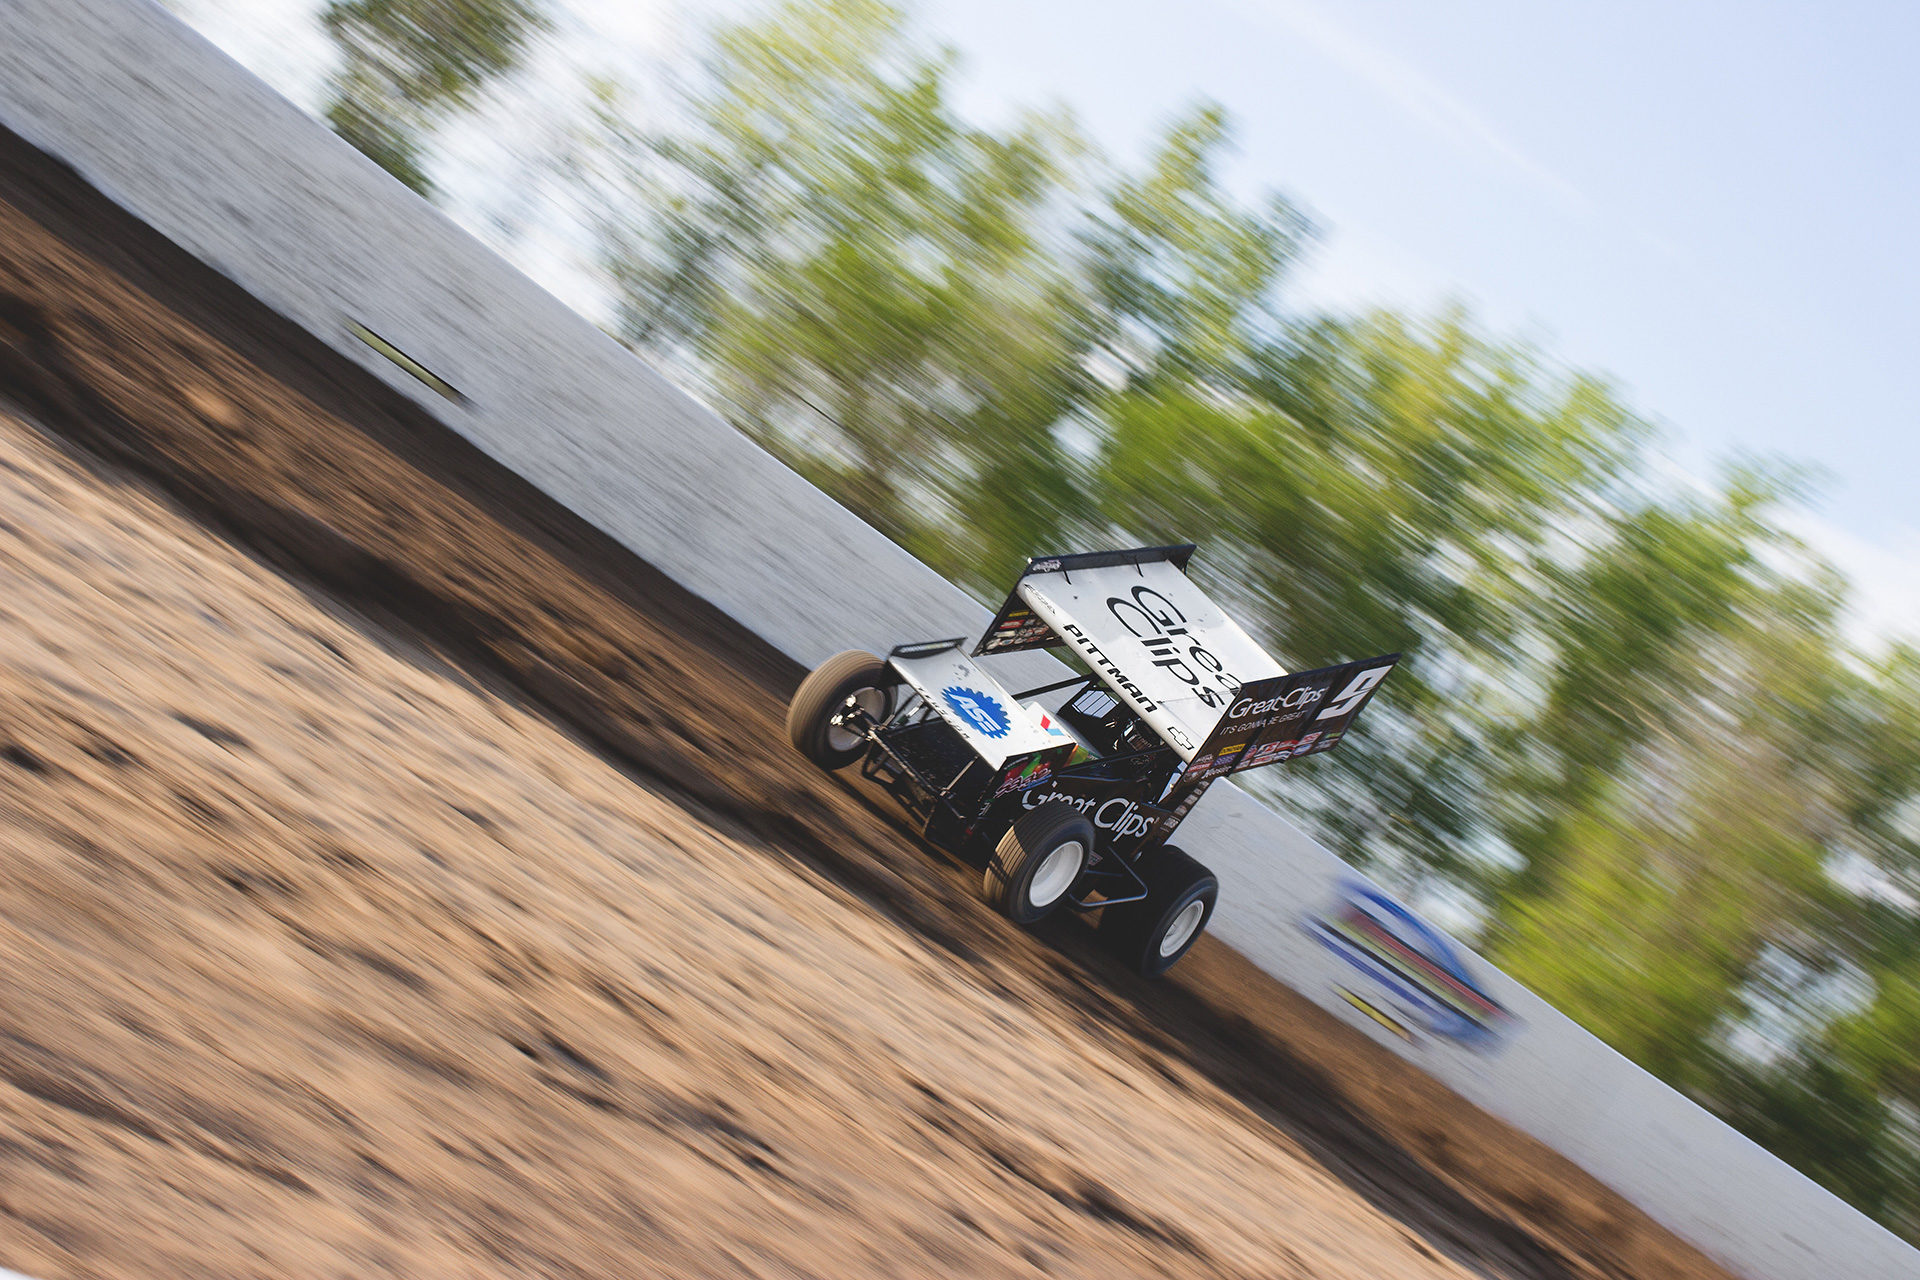 KKR racer; Daryn Pittman goes four wheels in the fluff during The World of Outlaws time trials Weedsport Speedway 2016. Pittman qualified 4th for the feature. ( Jeffrey Turford / TDP )